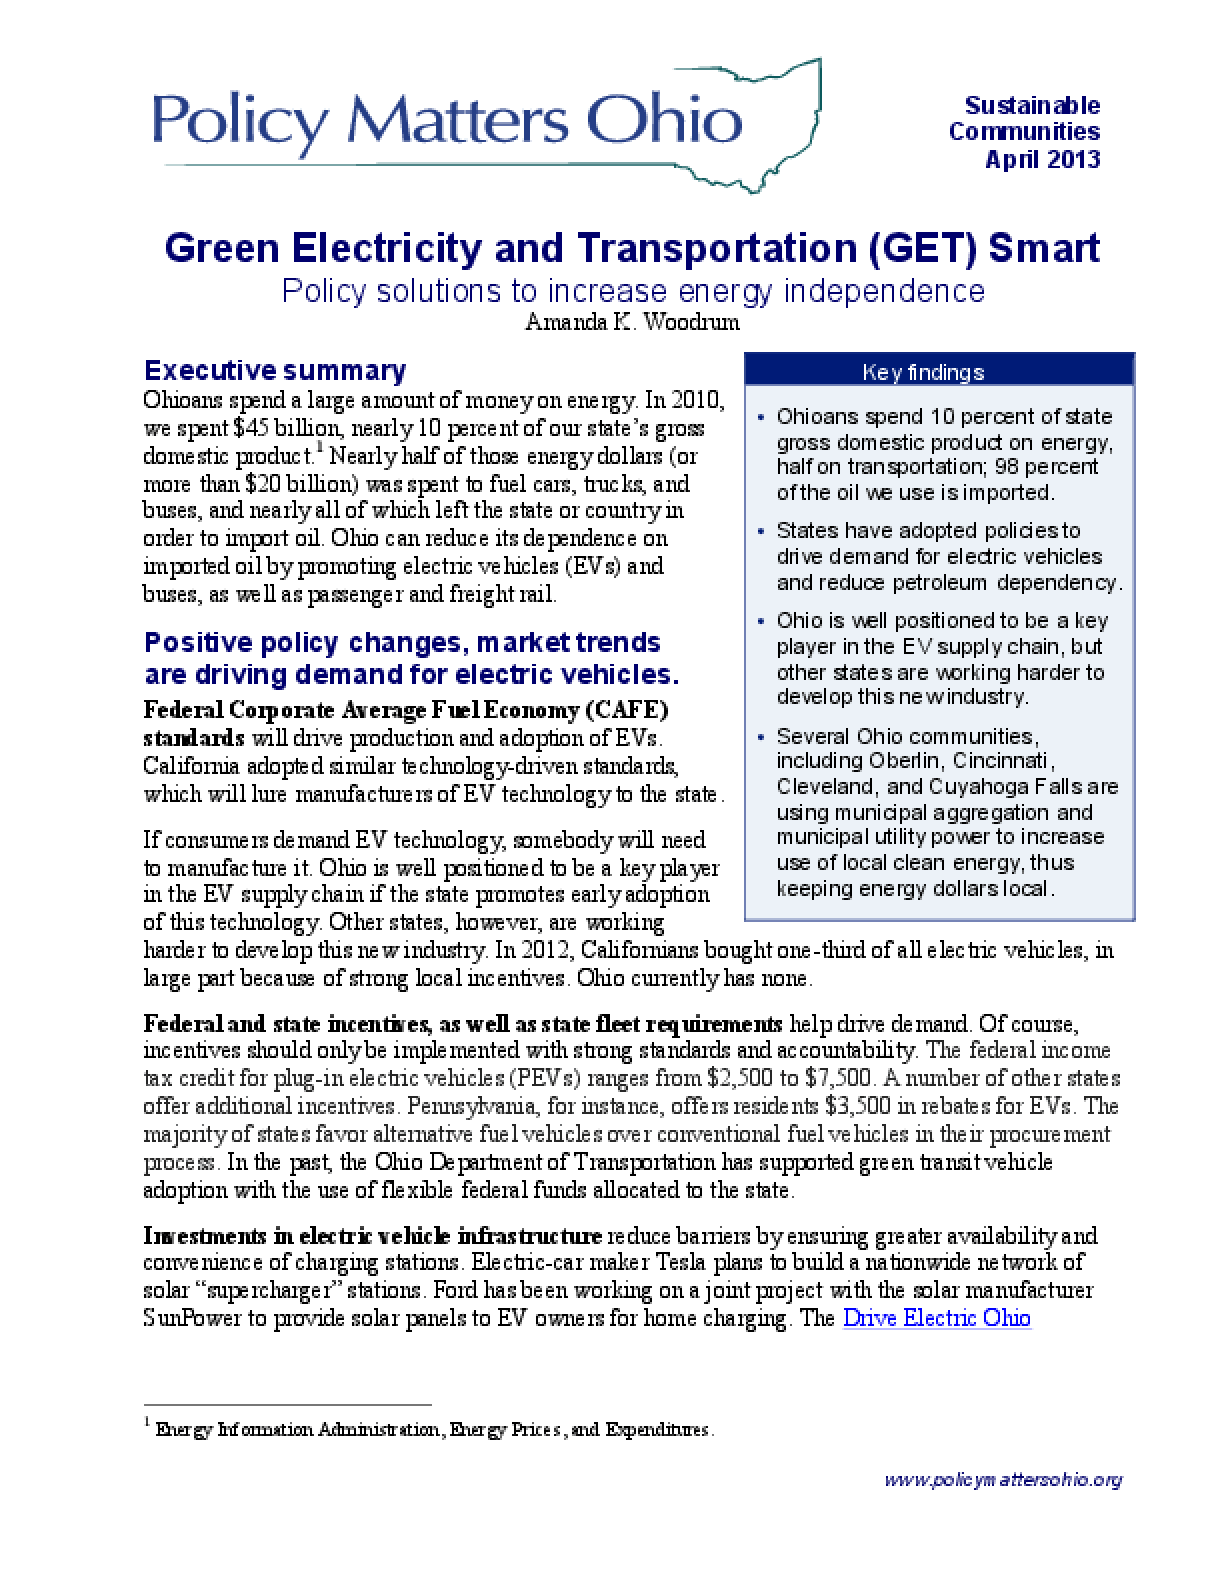 Green Electricity and Transportation (GET) Smart: Policy Solutions to Increase Energy Independence